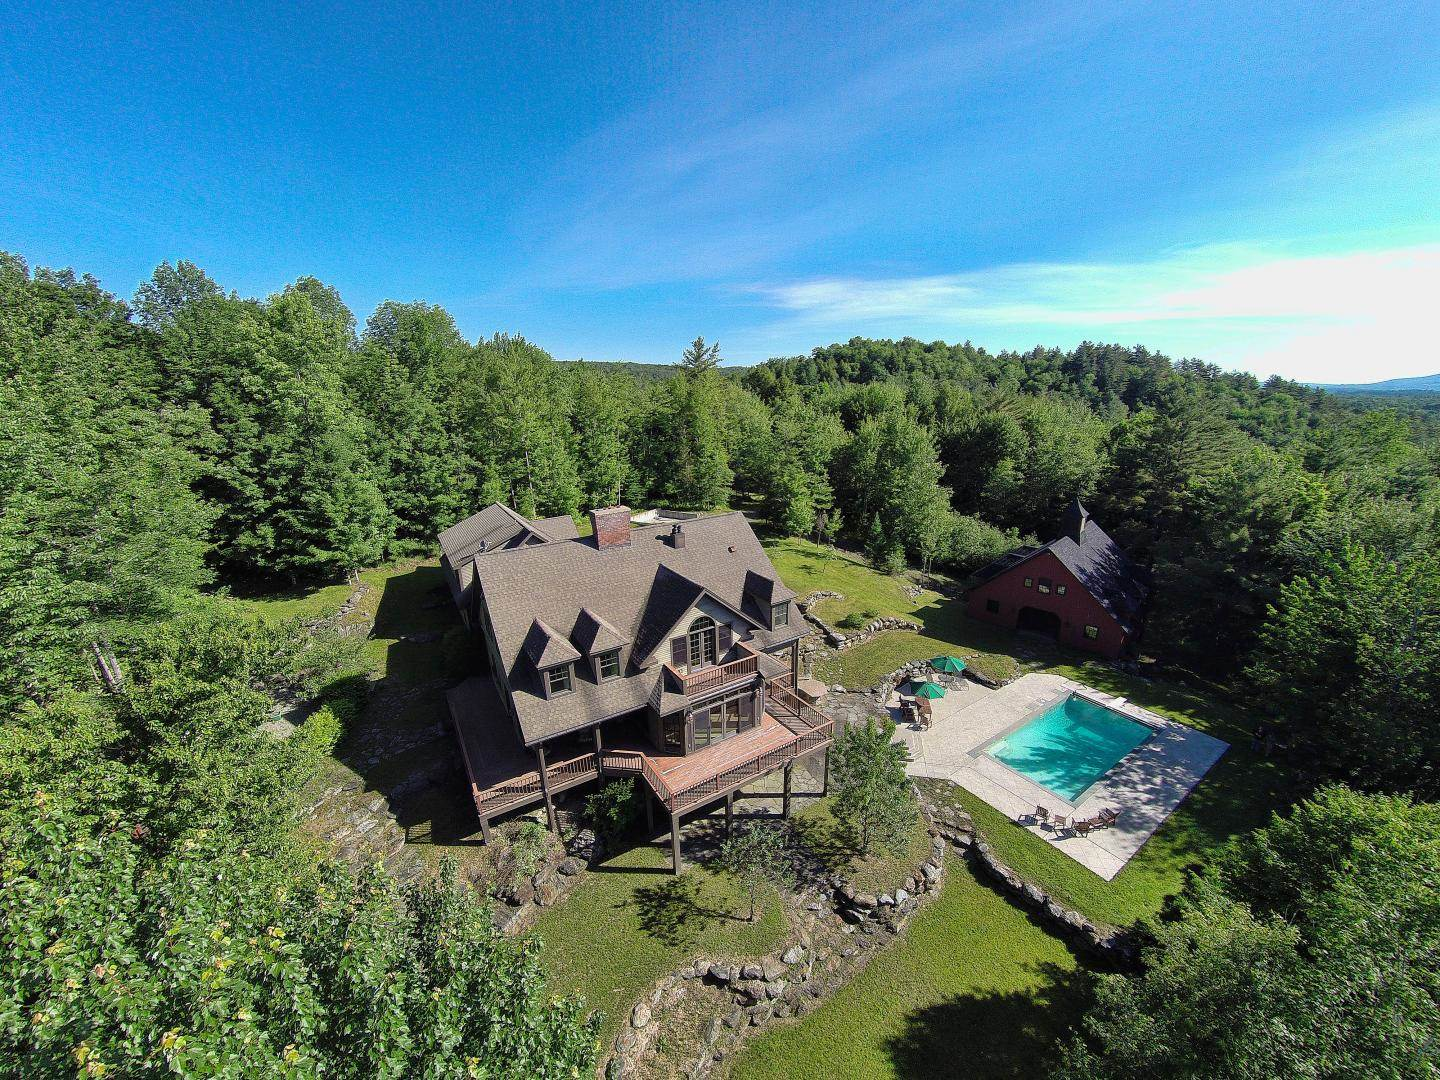 A magnificent estate in Stowe, Vermont, set on 2.2 acres